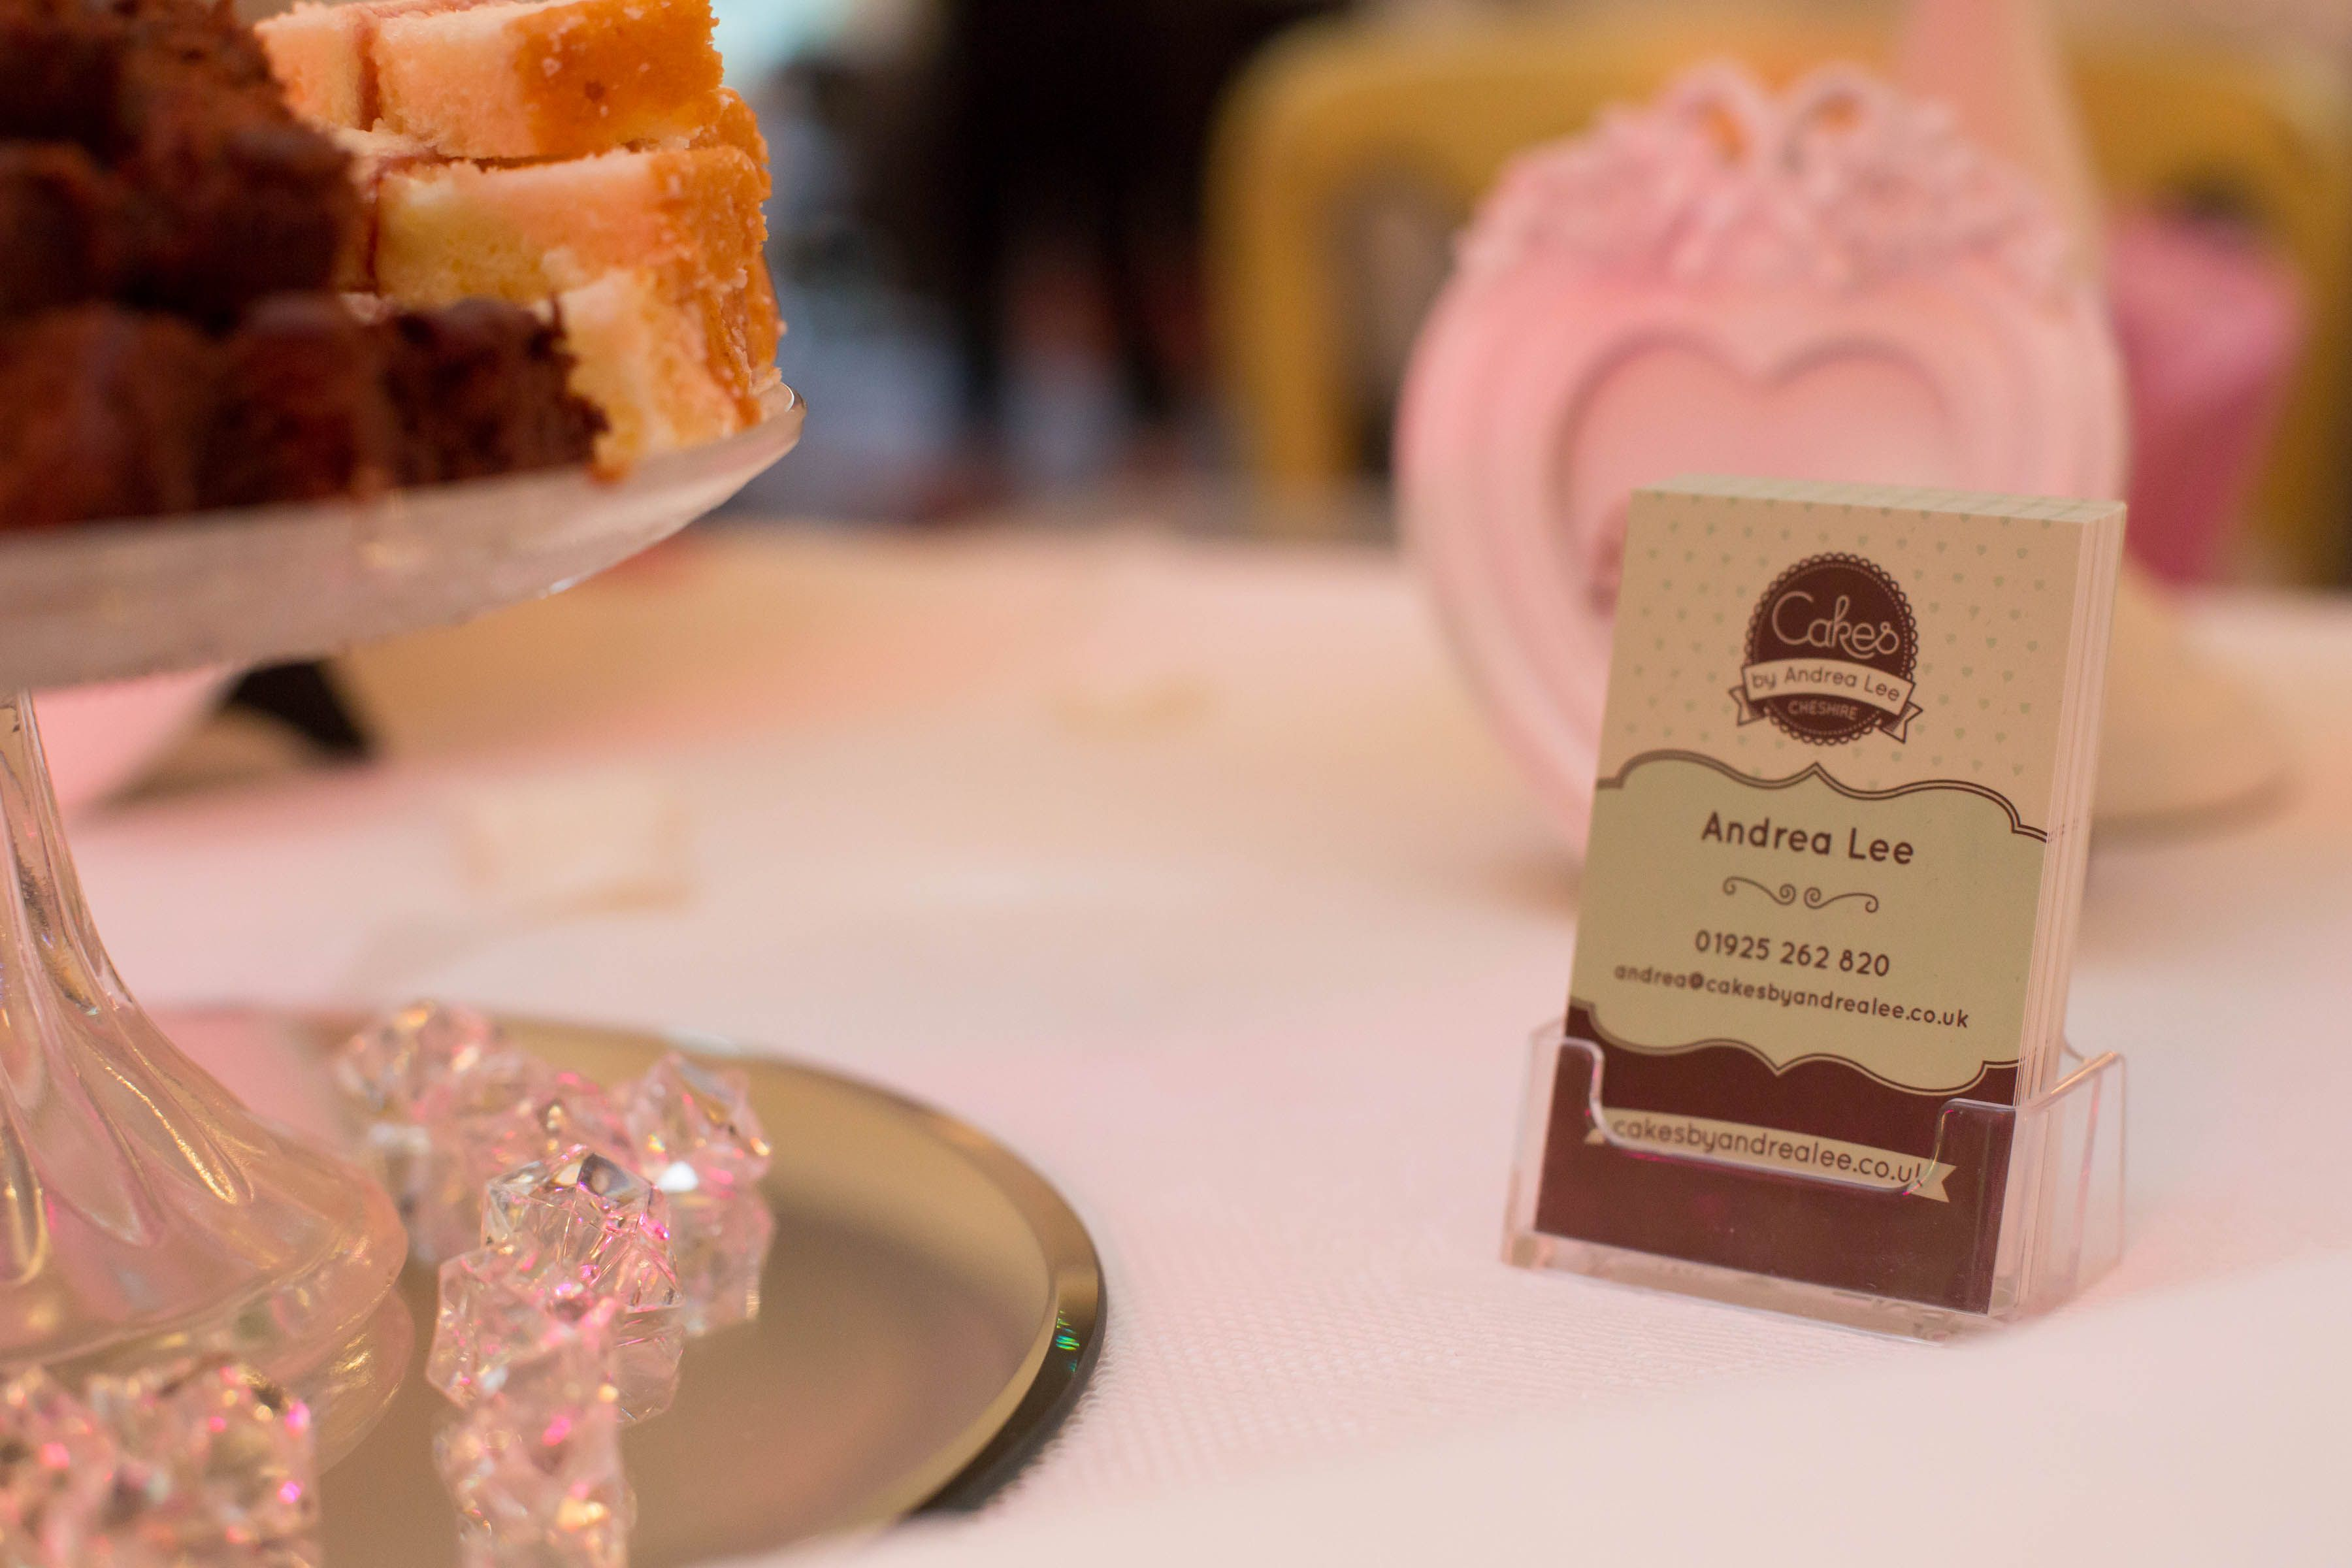 Business cards and sample cake wedding cakes pinterest cake business cards and sample cake reheart Choice Image